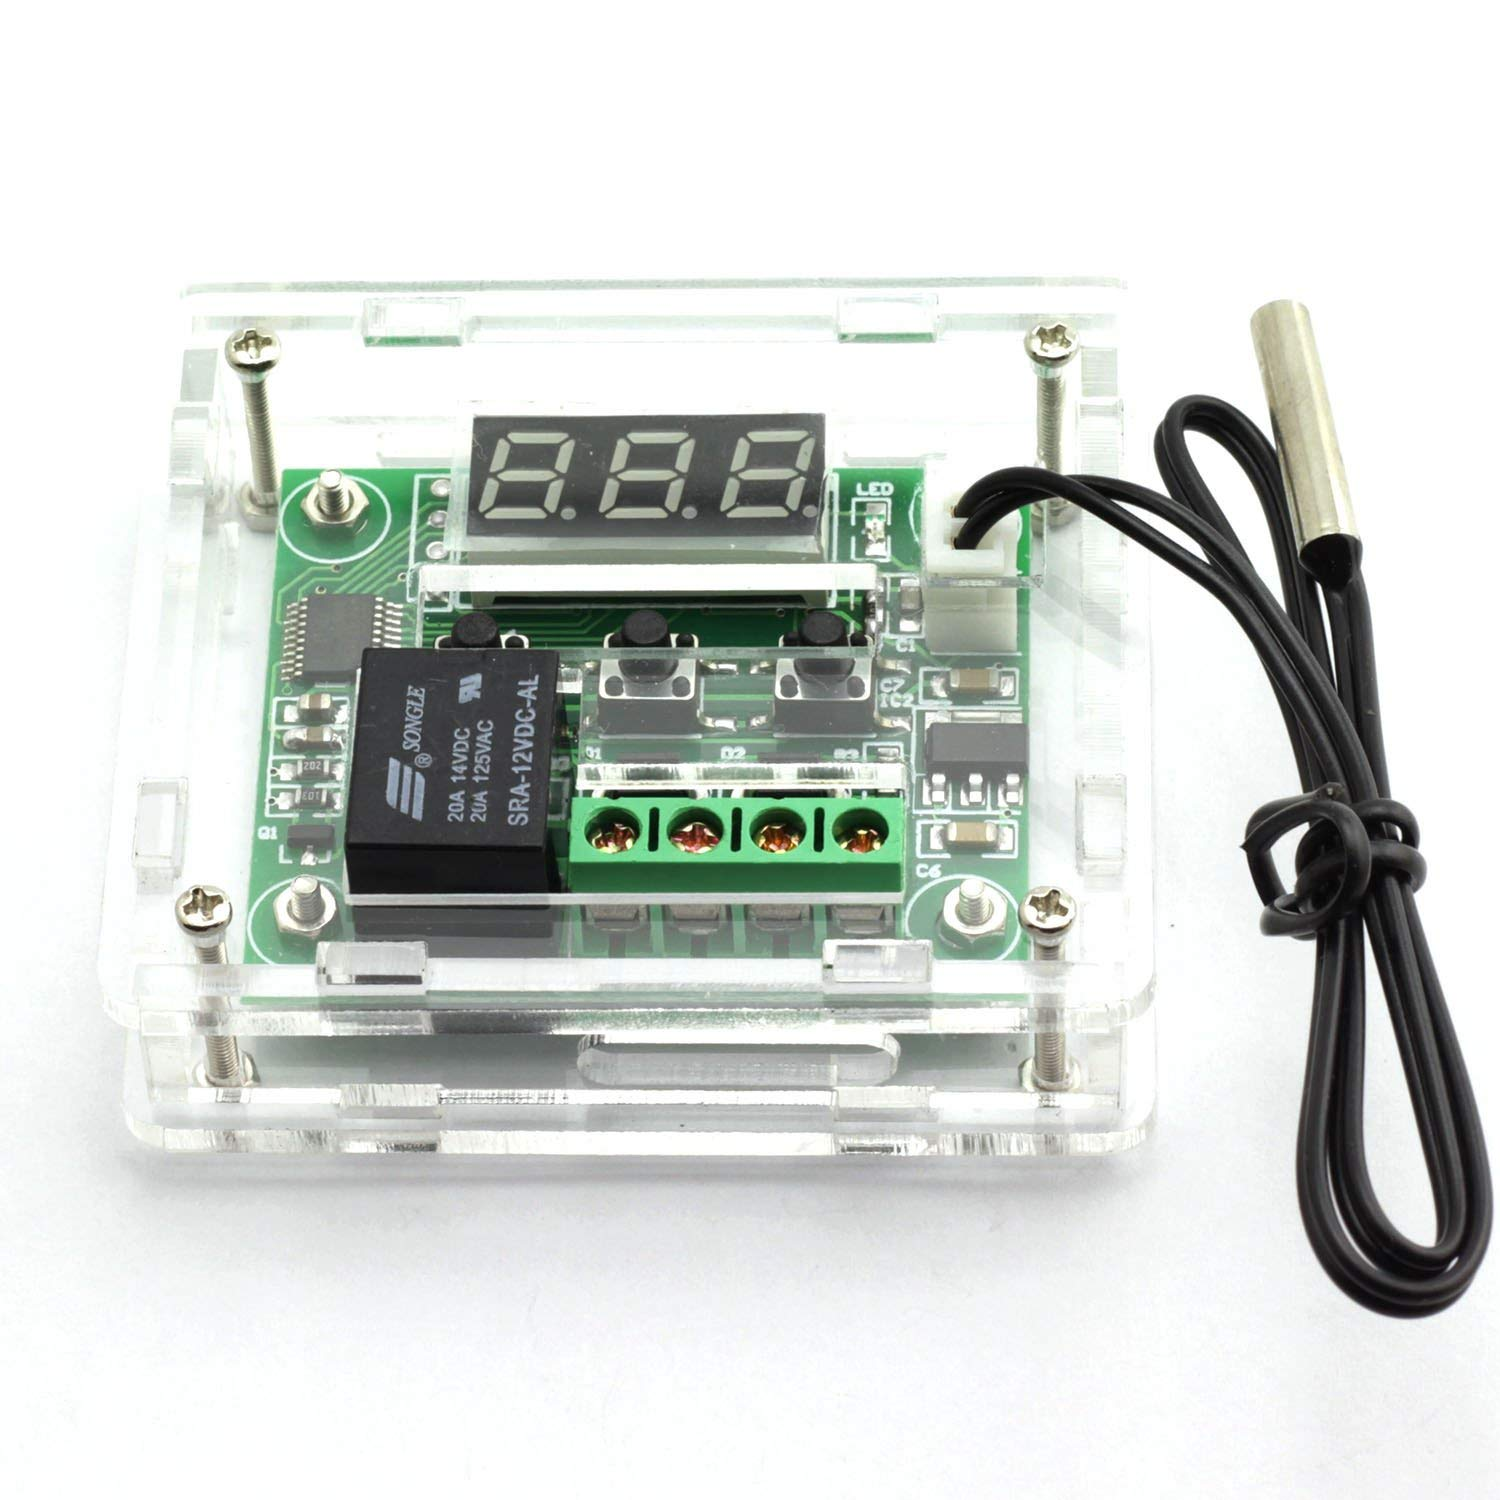 Temperature Controller DC shop 12V Digital New color Heating Temp Cooling Therm